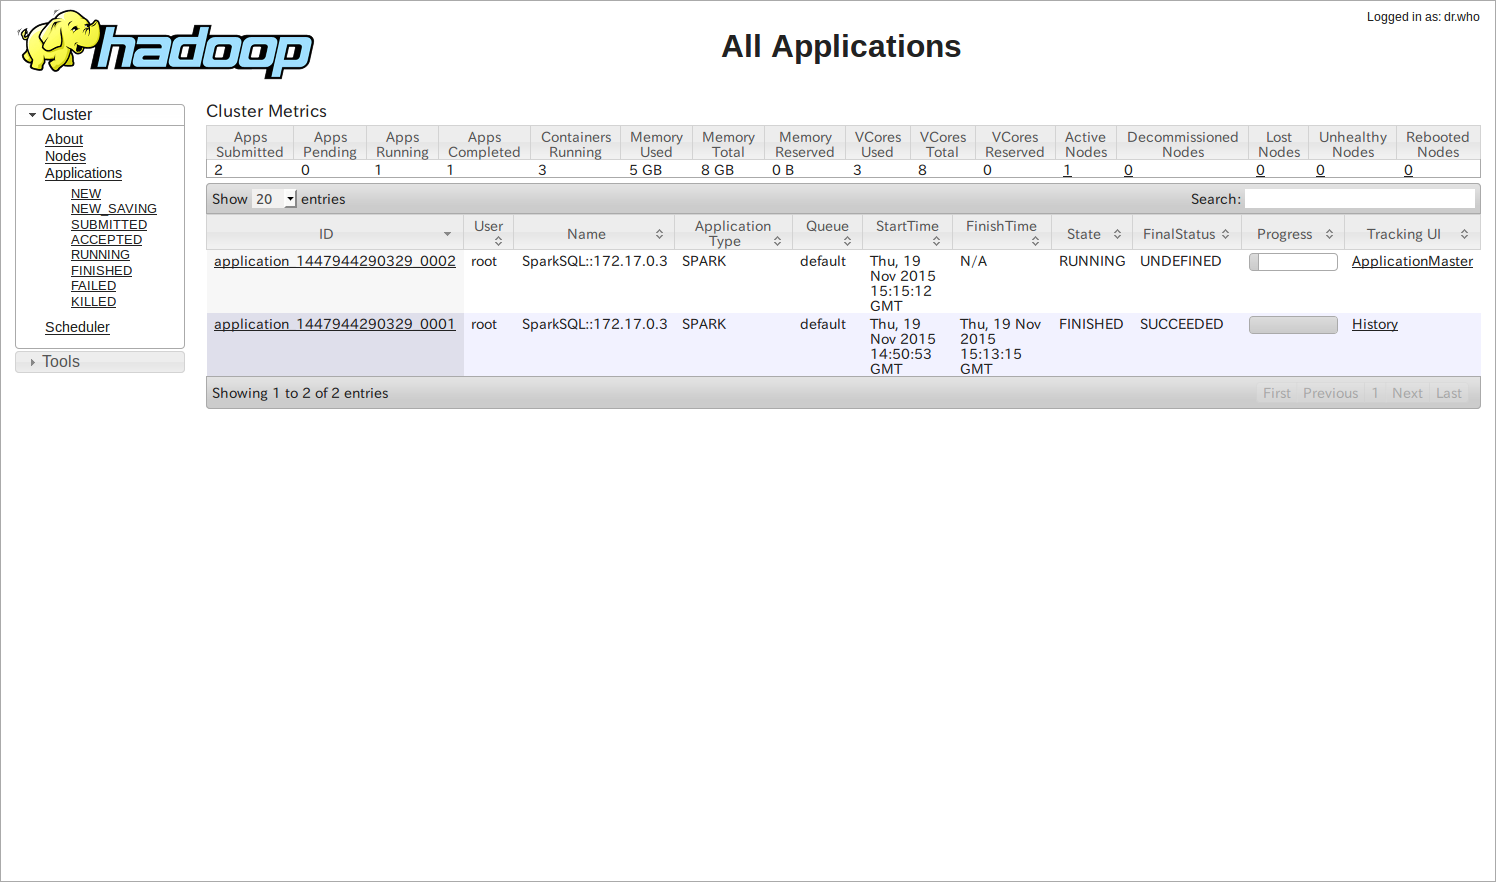 All Applications 2015-11-20 00-20-41.png